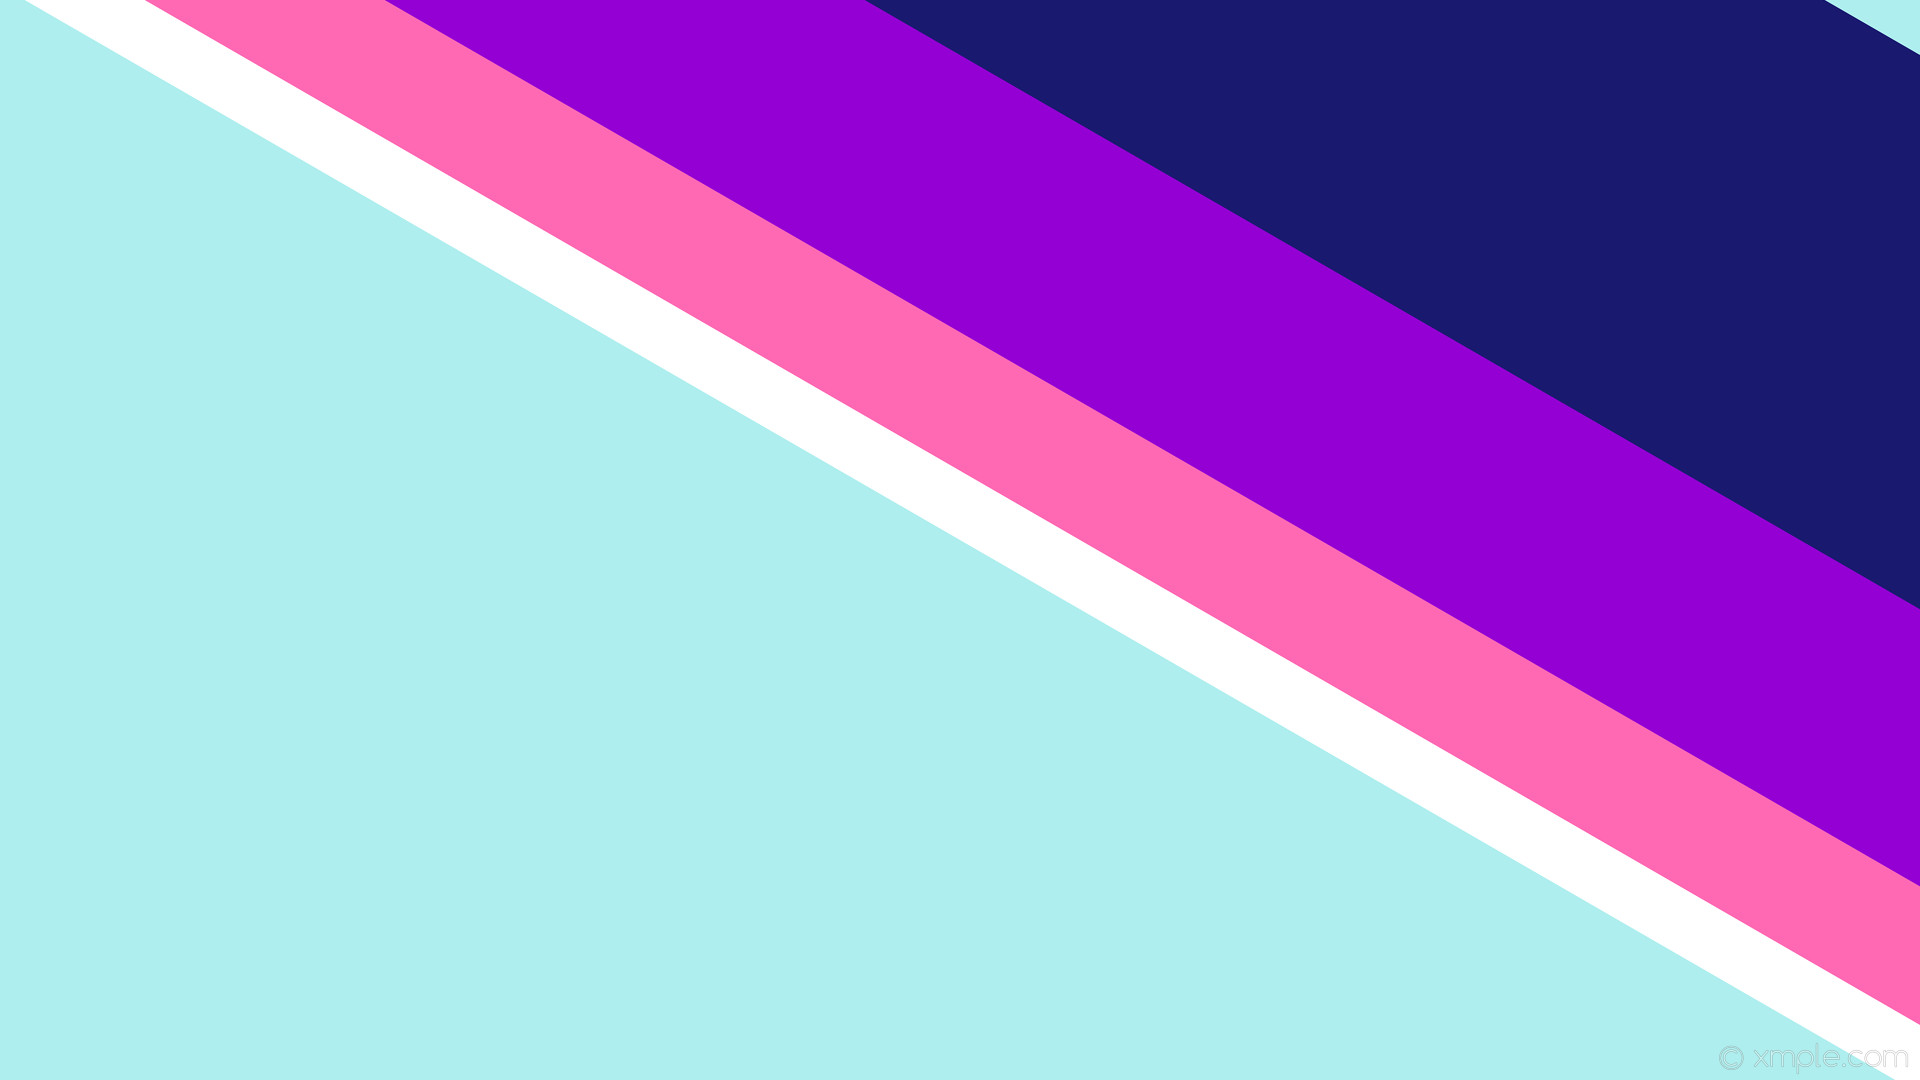 1920x1080 wallpaper streaks stripes pink white blue purple lines hot pink dark violet  midnight blue pale turquoise